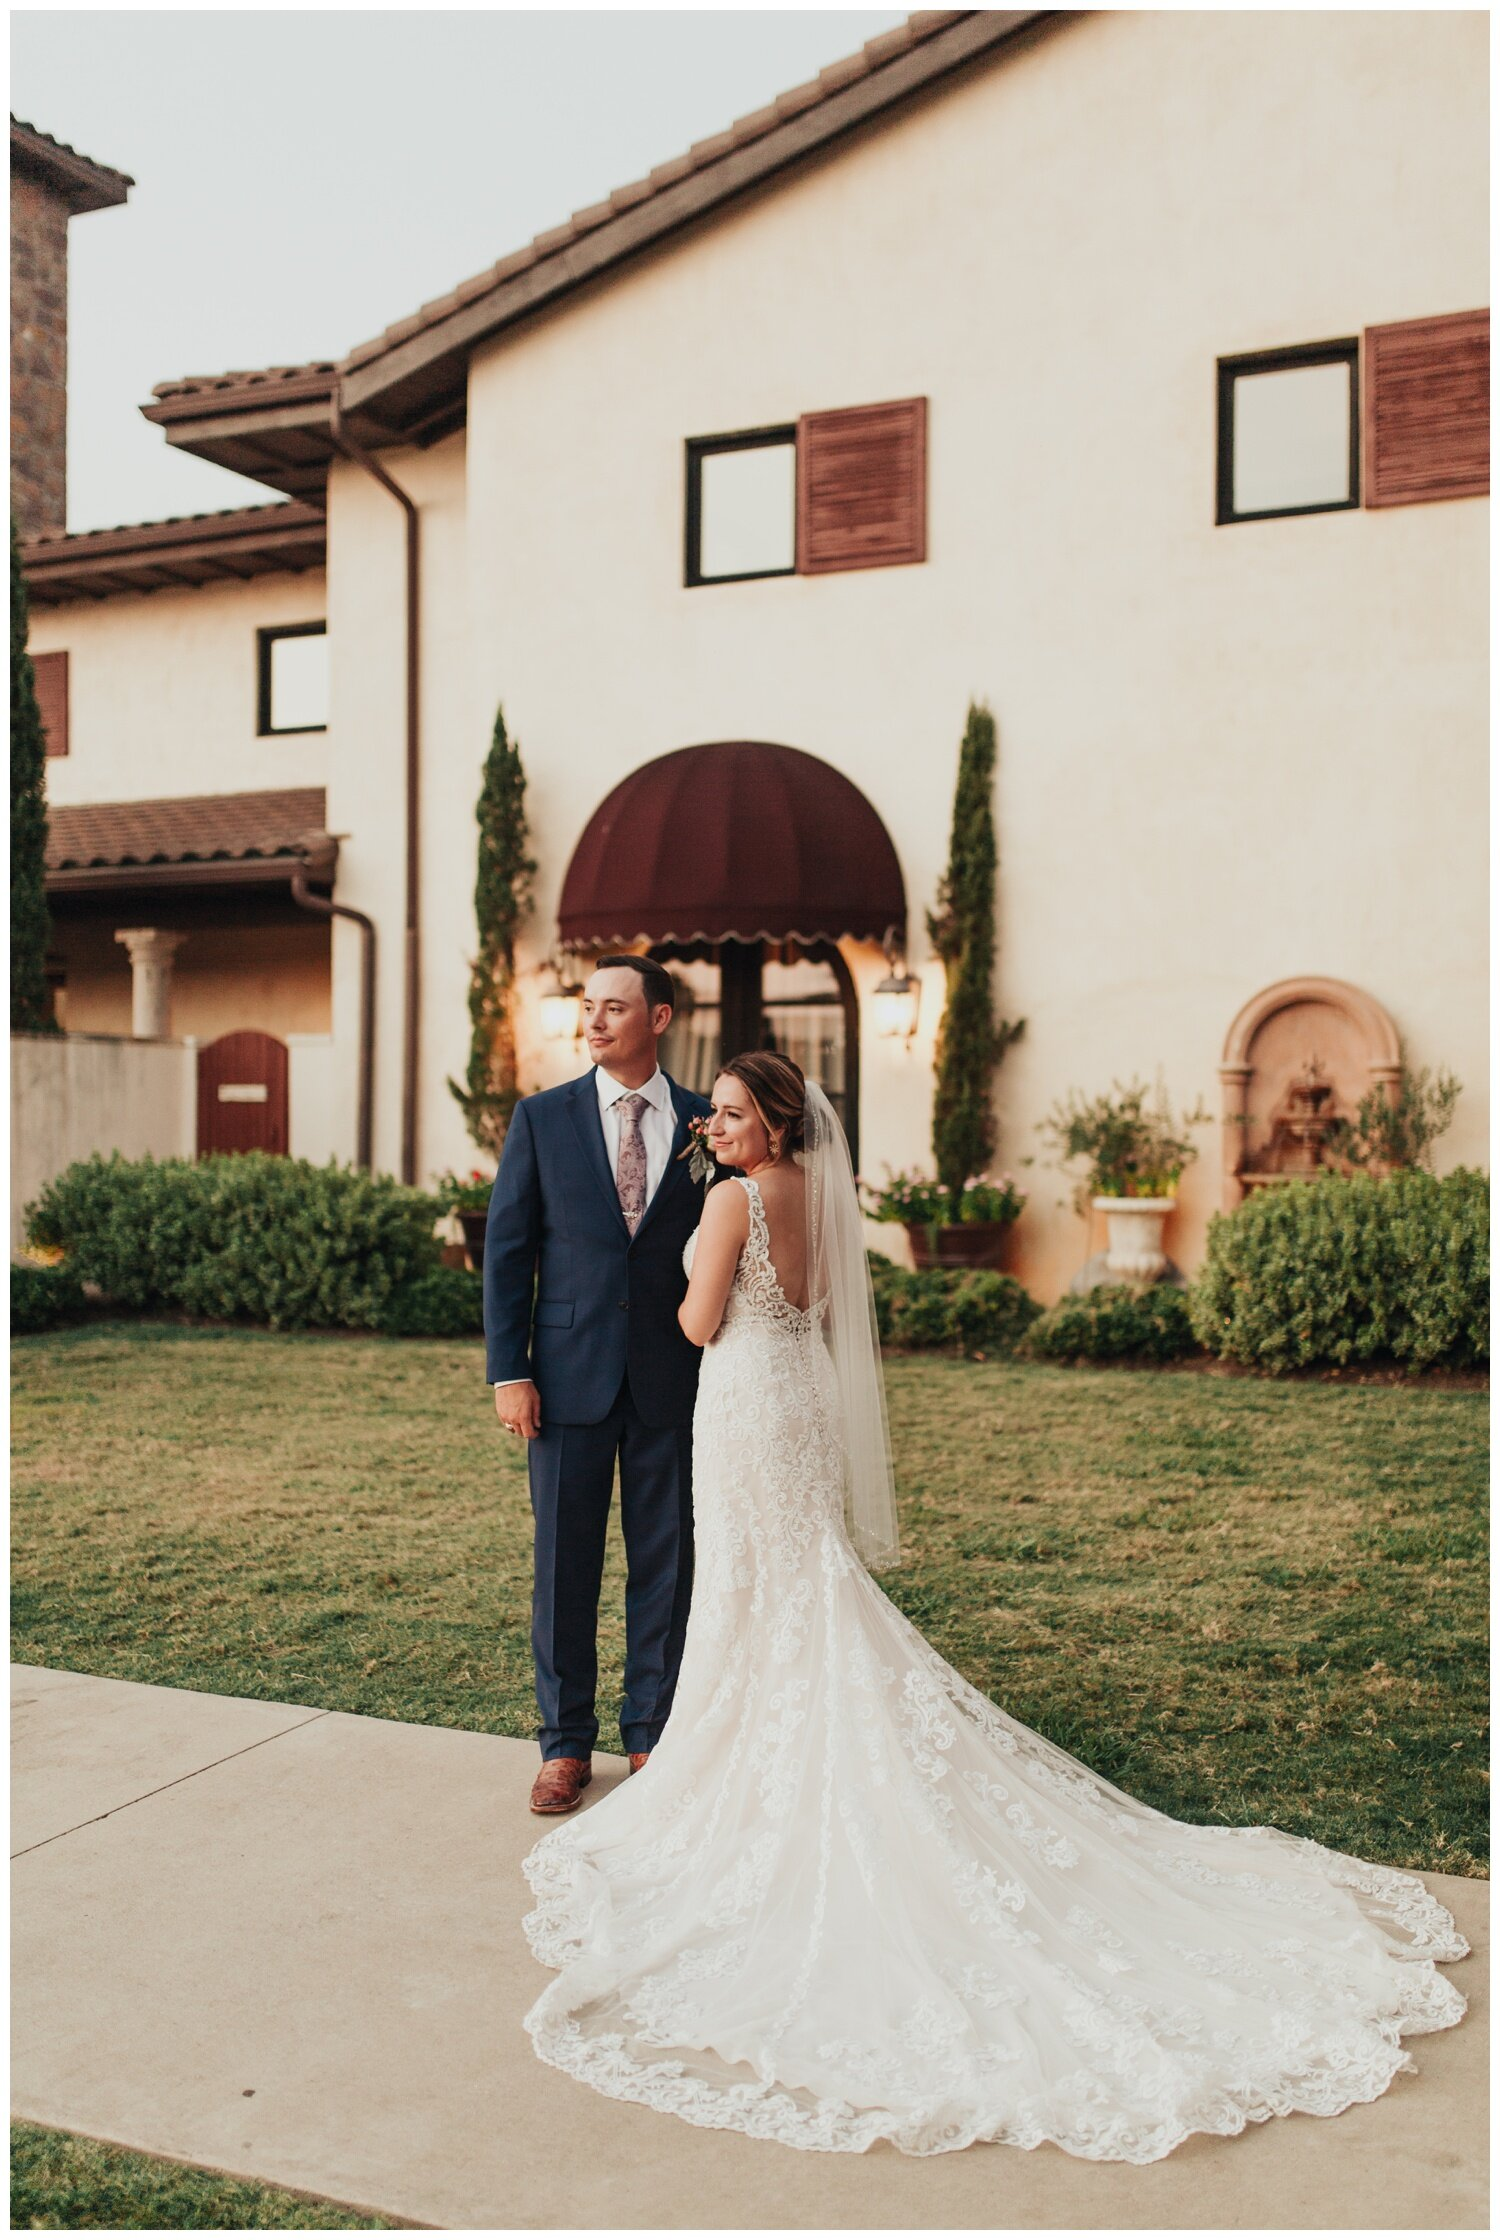 Modern Wedding at Ma Maison in Dripping Springs, Austin, Texas (Joshua and Parisa – Austin Wedding Photographer)_0060.jpg